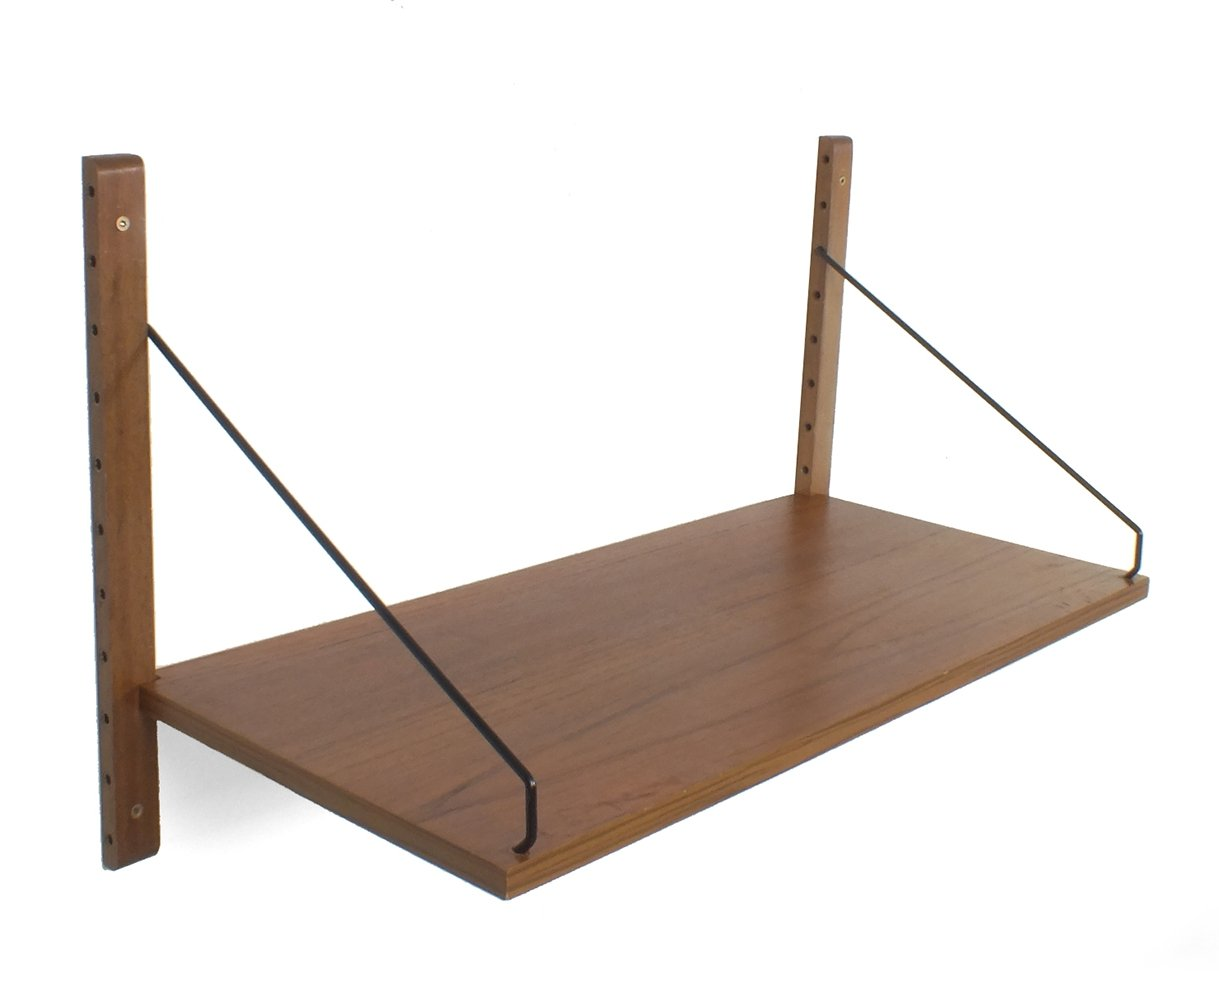 Royal system writing shelf by Poul Cadovius for Cado, 1950s